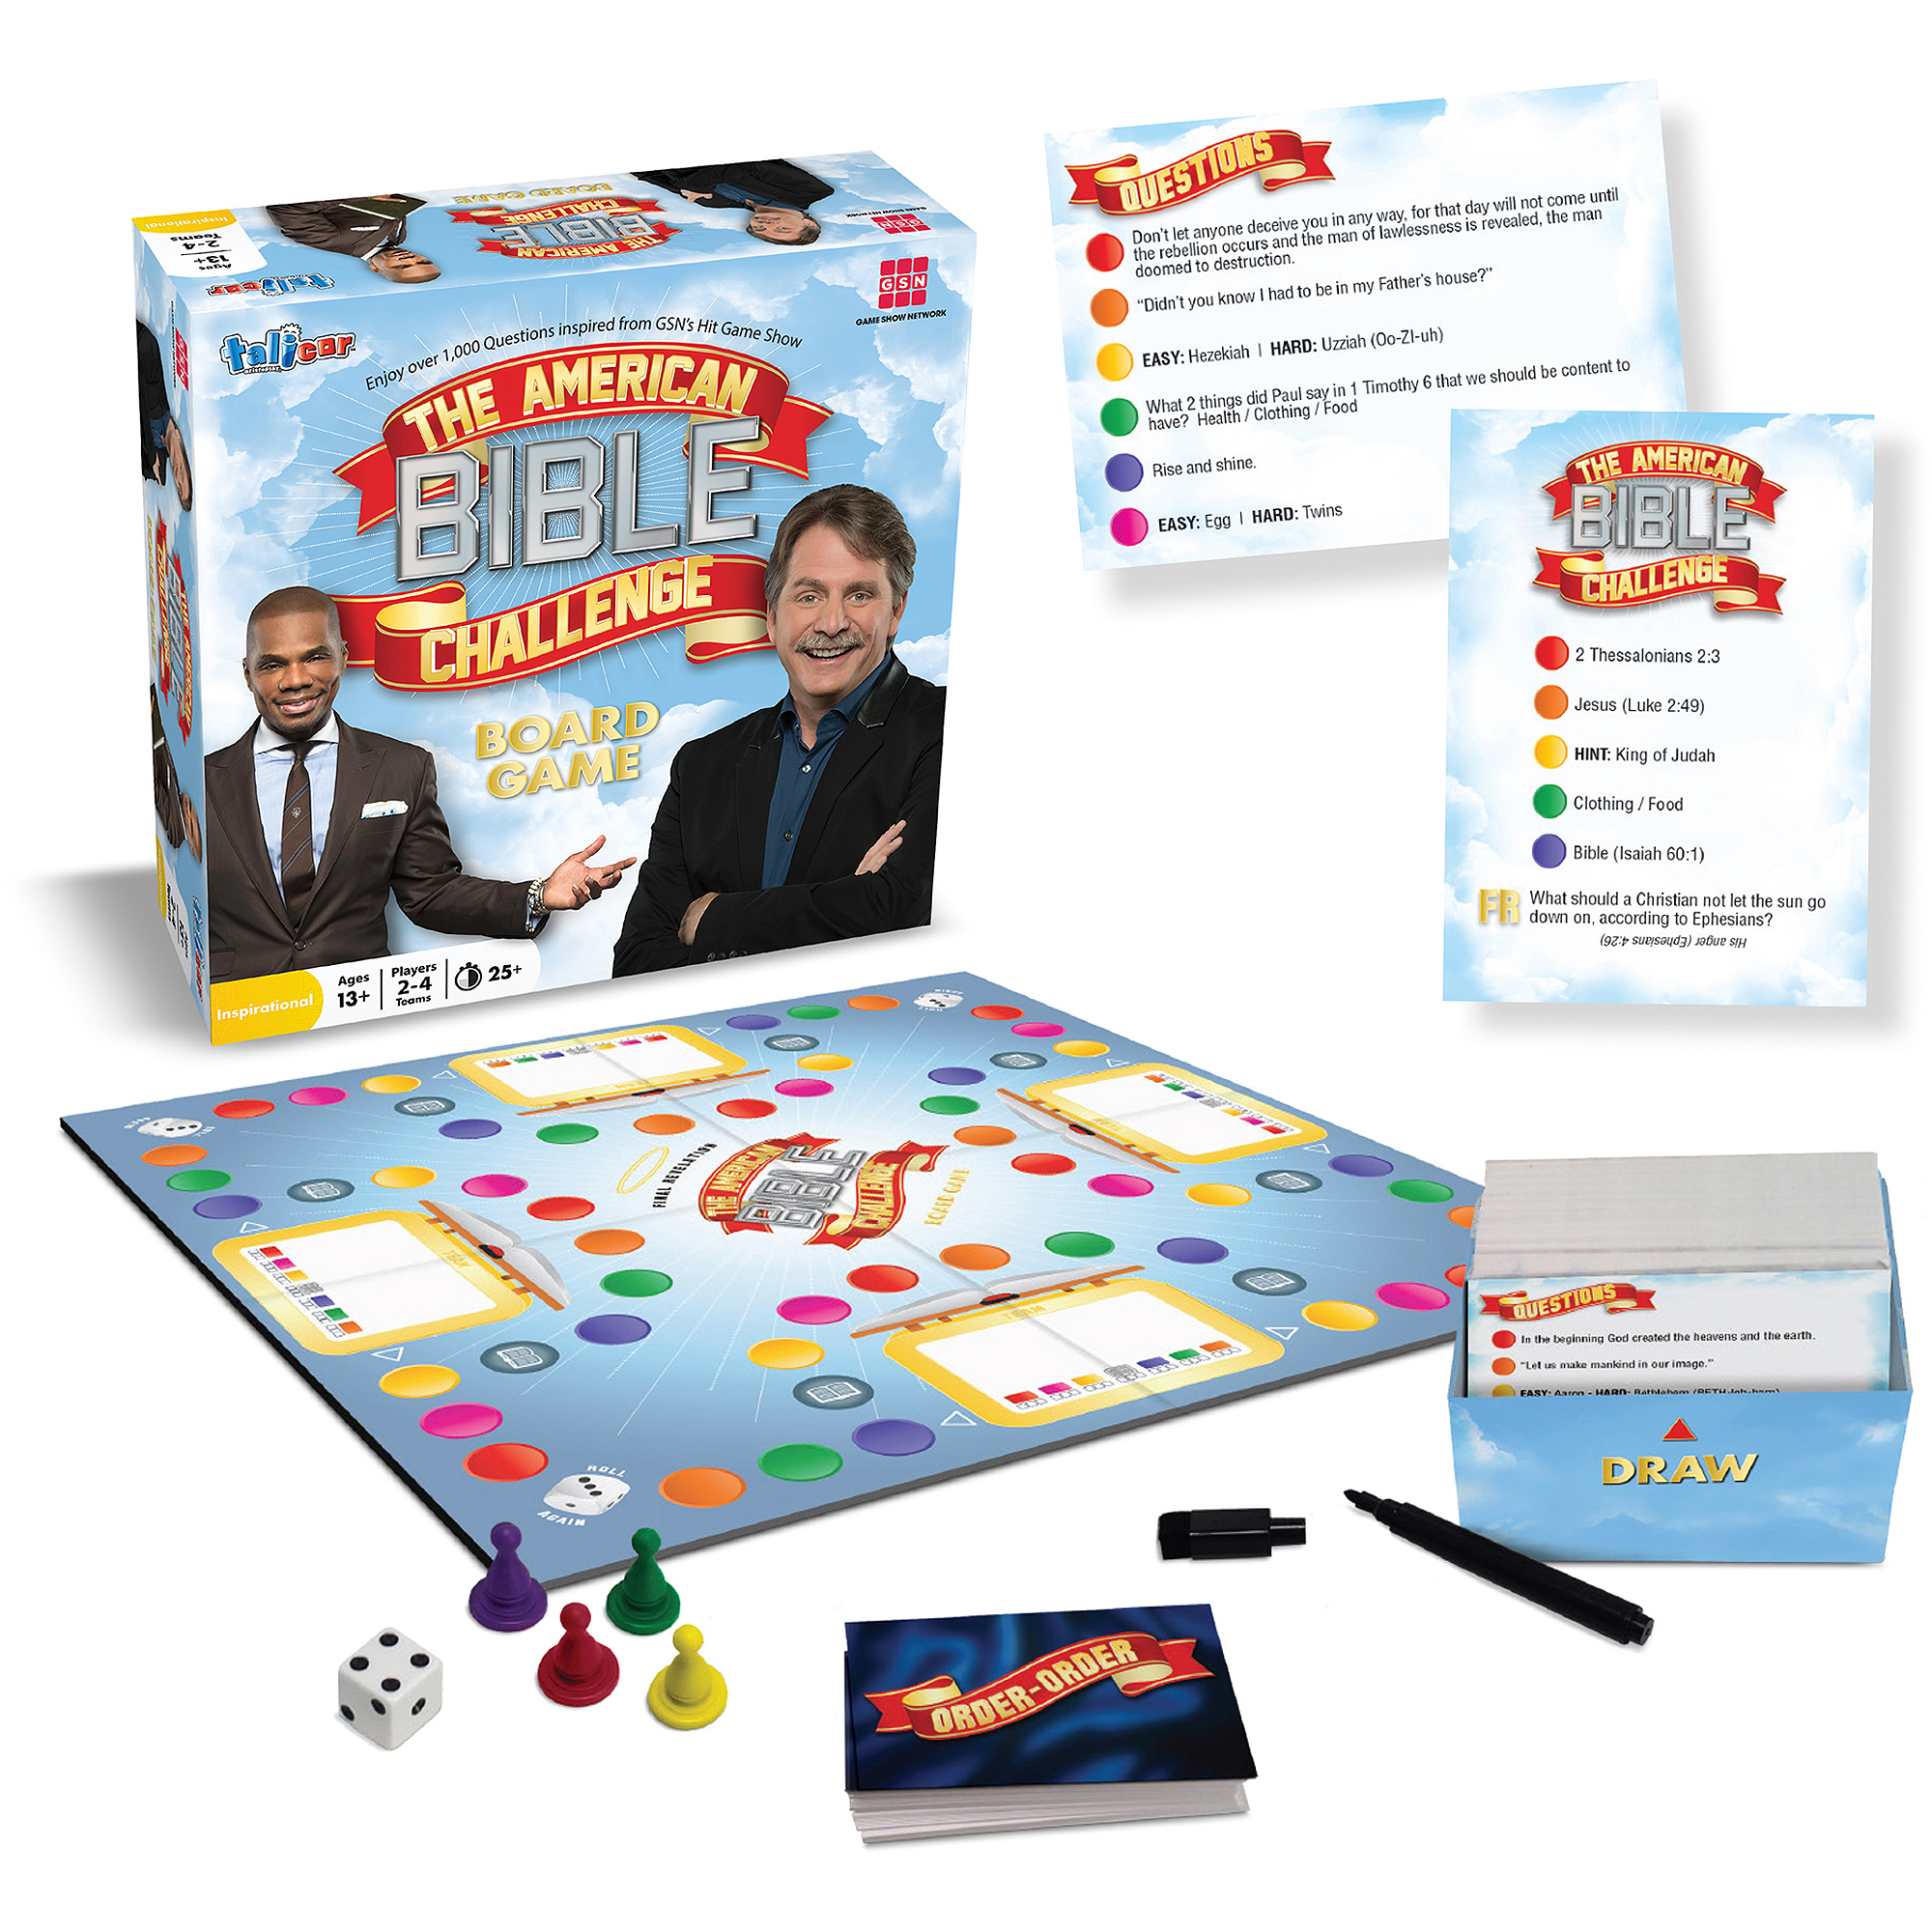 The American Bible Challenge Board Game